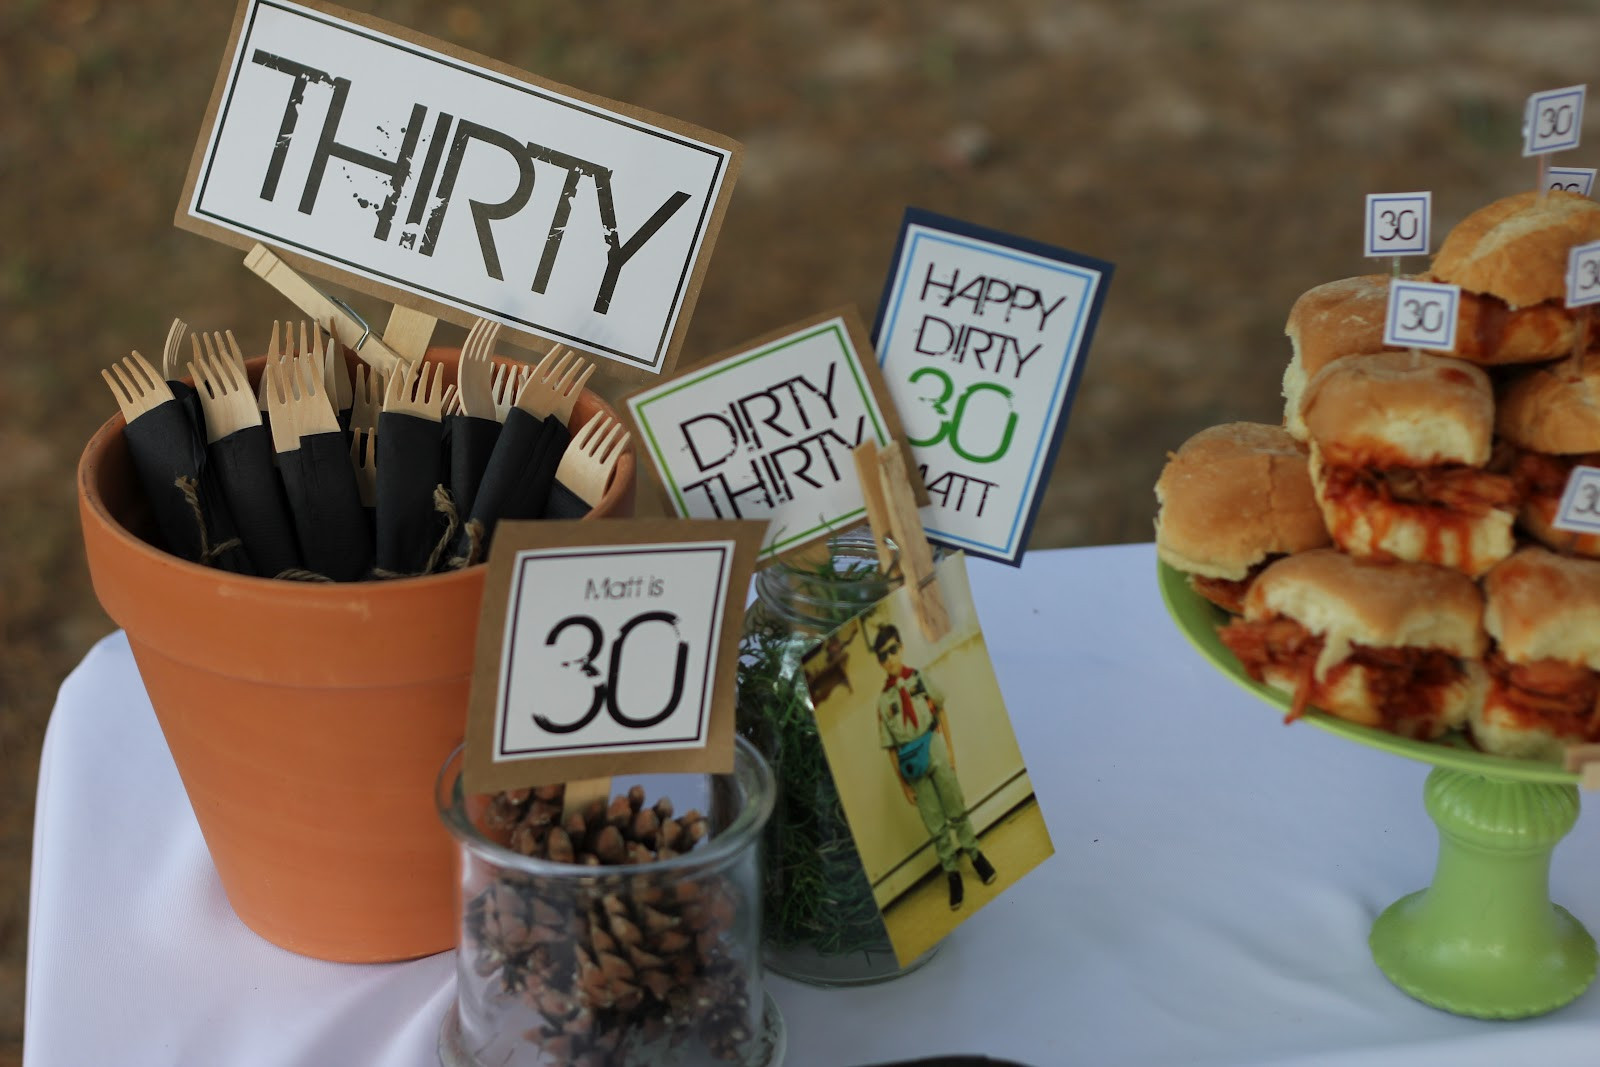 30 Birthday Party Ideas  7 Clever Themes for a Smashing 30th Birthday Party